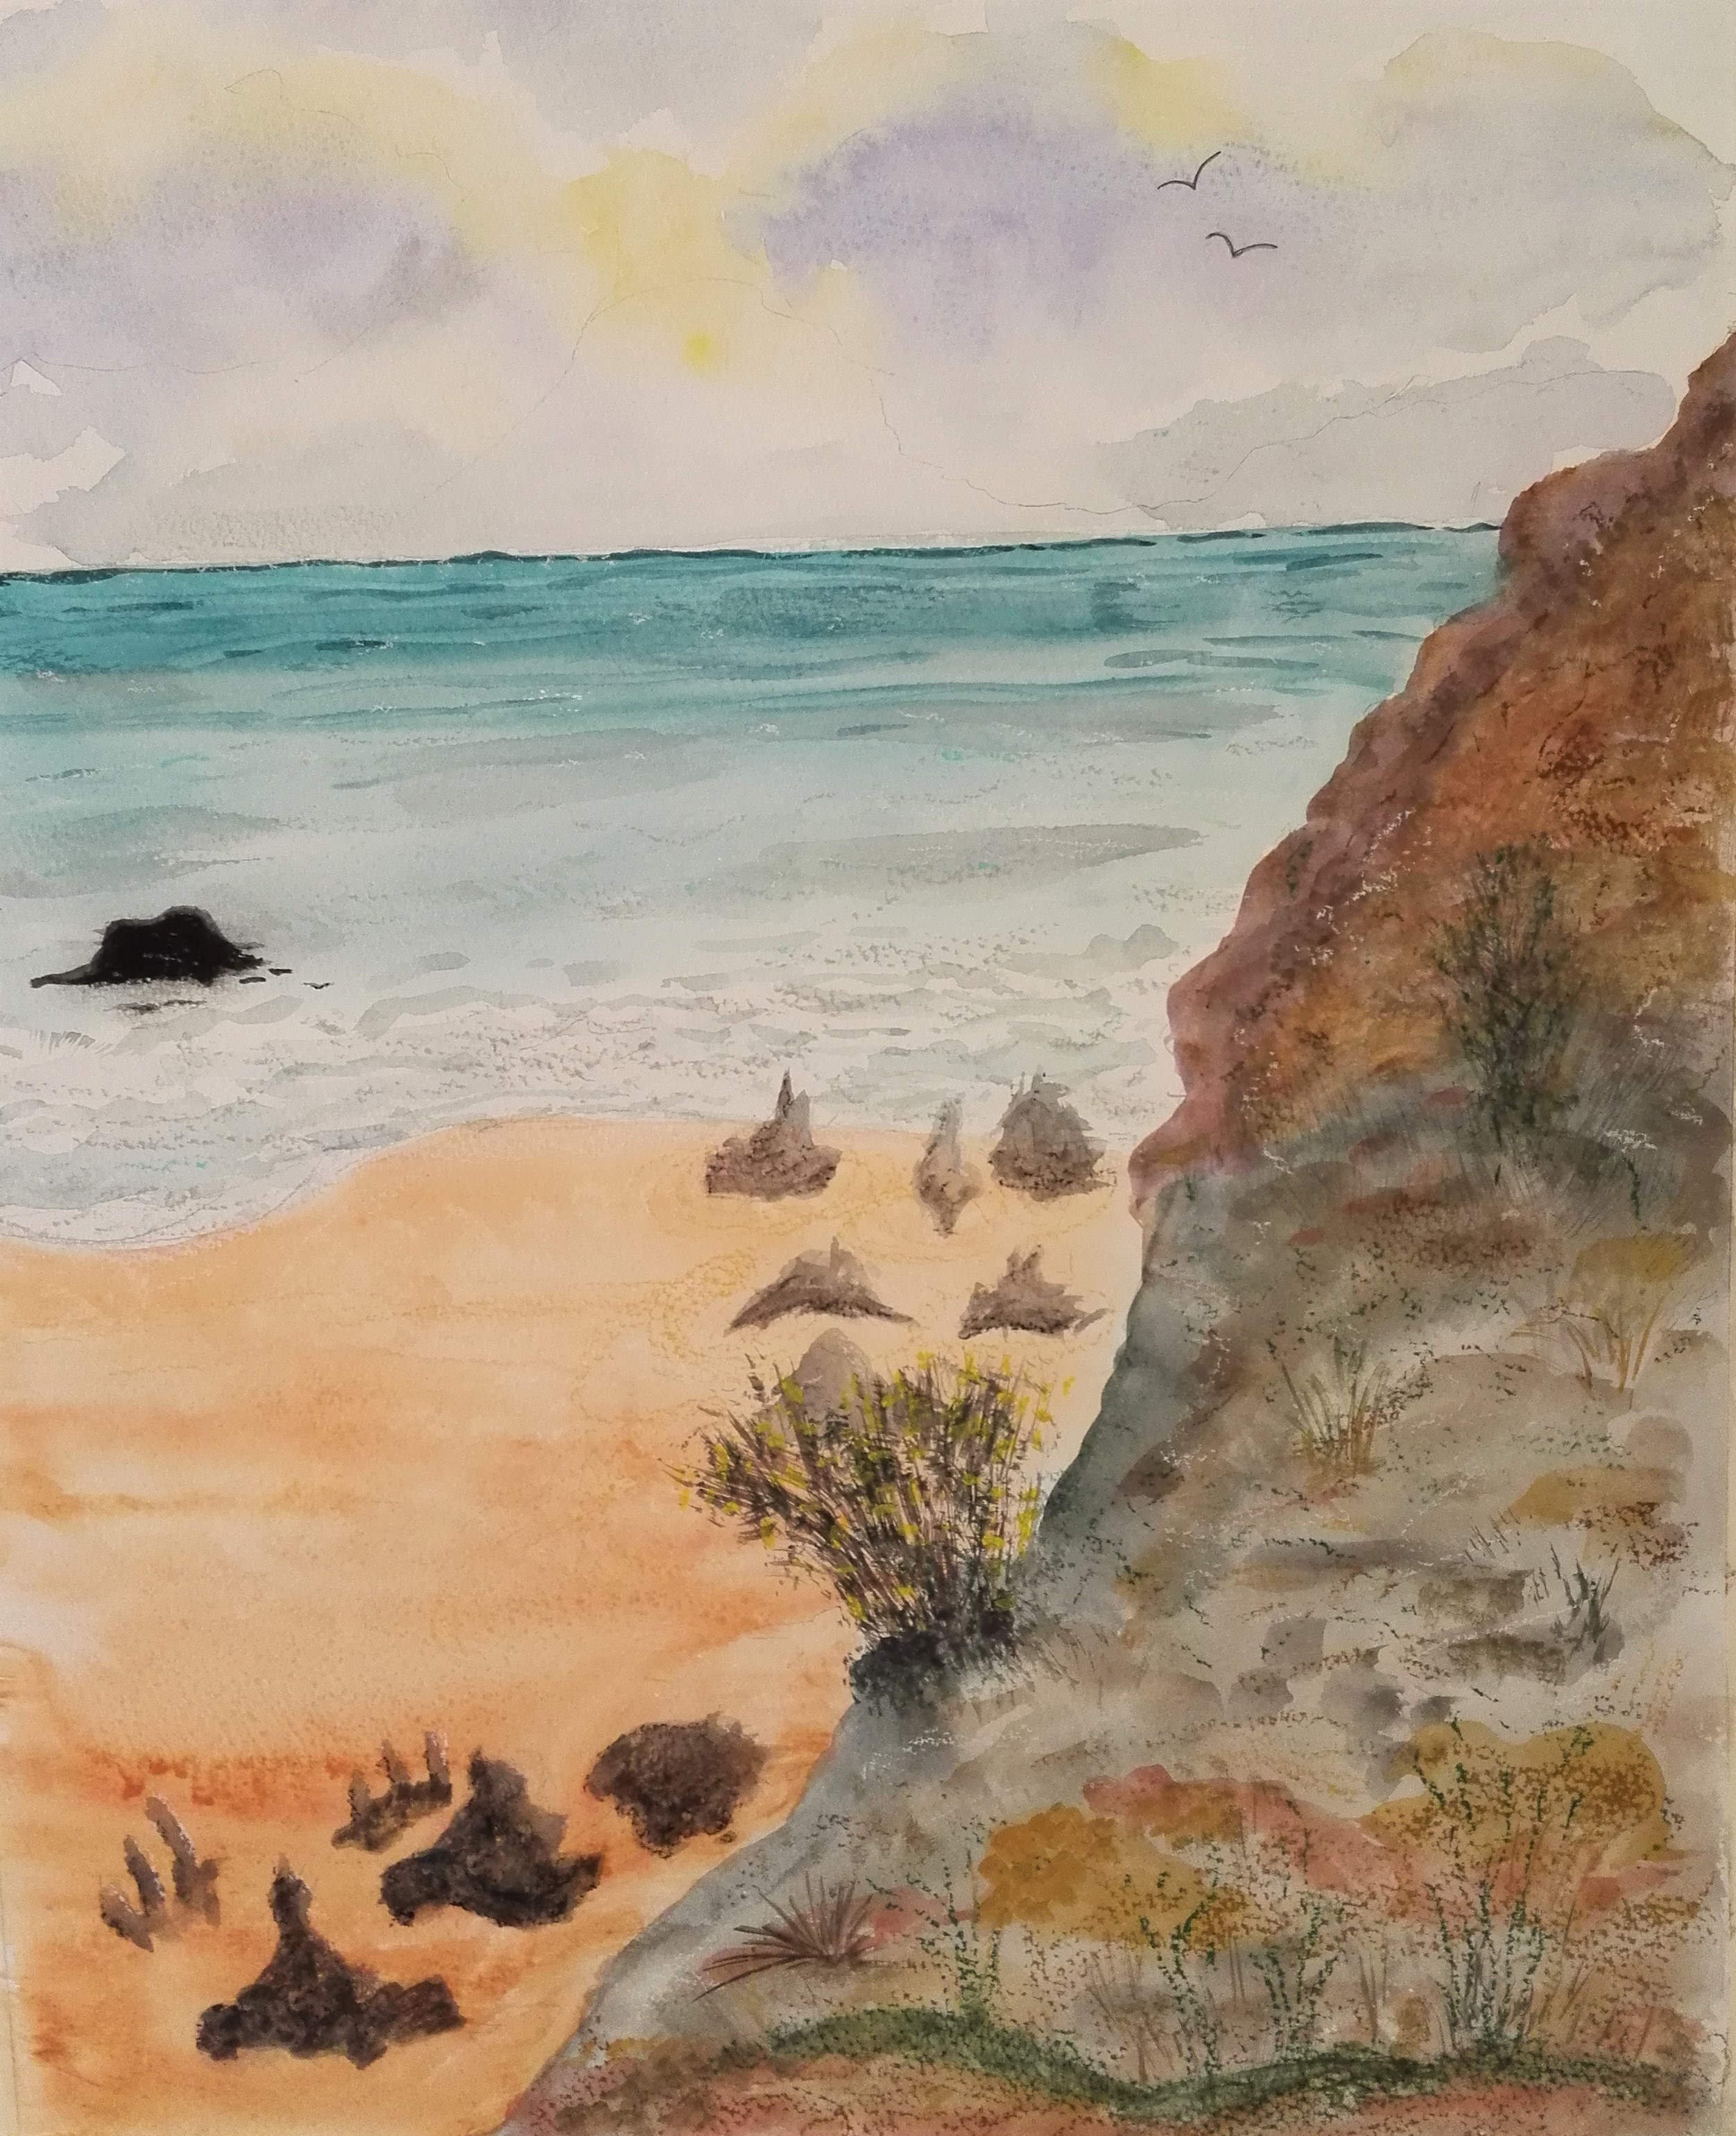 Seascape watercolour painted by a student at Magic Wool Art and Craft Studio in West Midlands